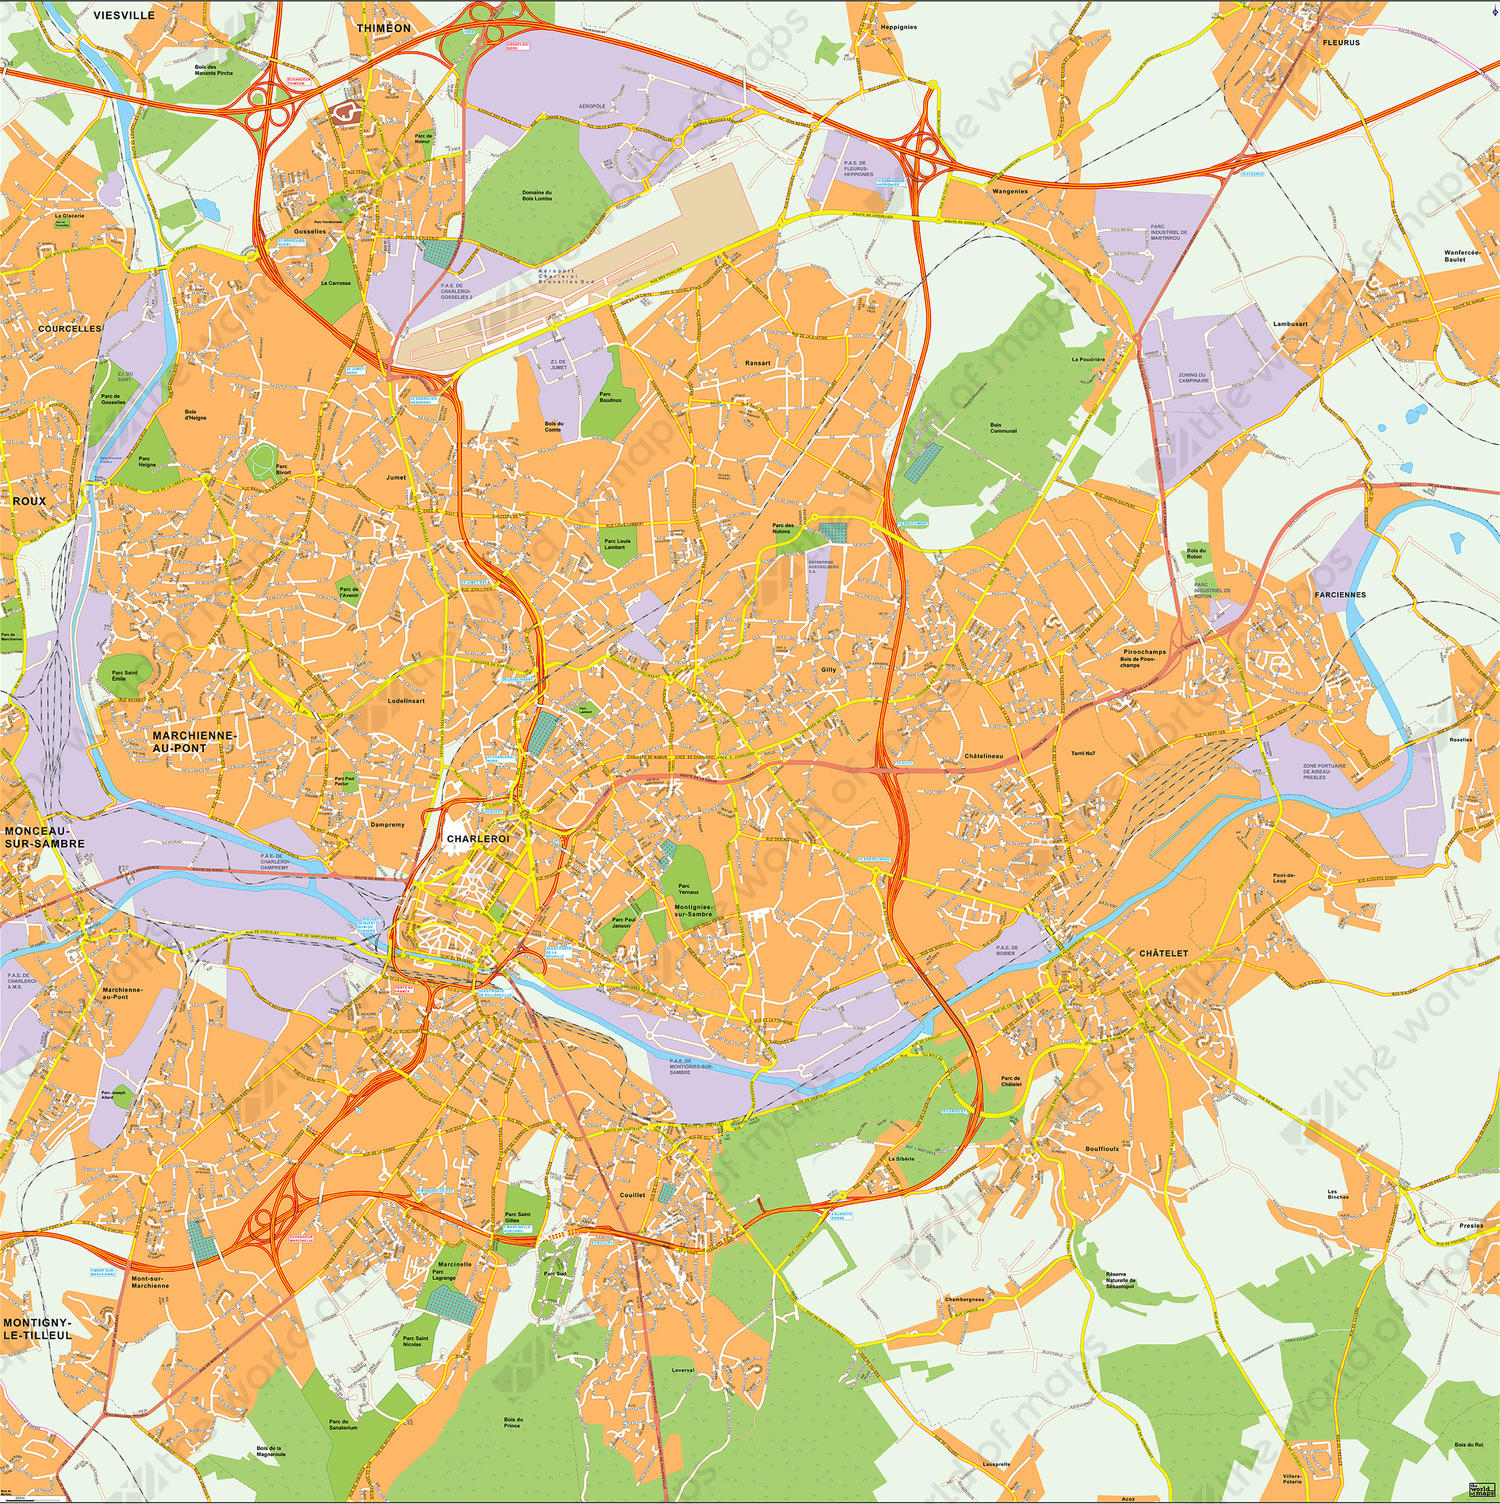 Digital City Map Brussels 153 | The World of Maps.com